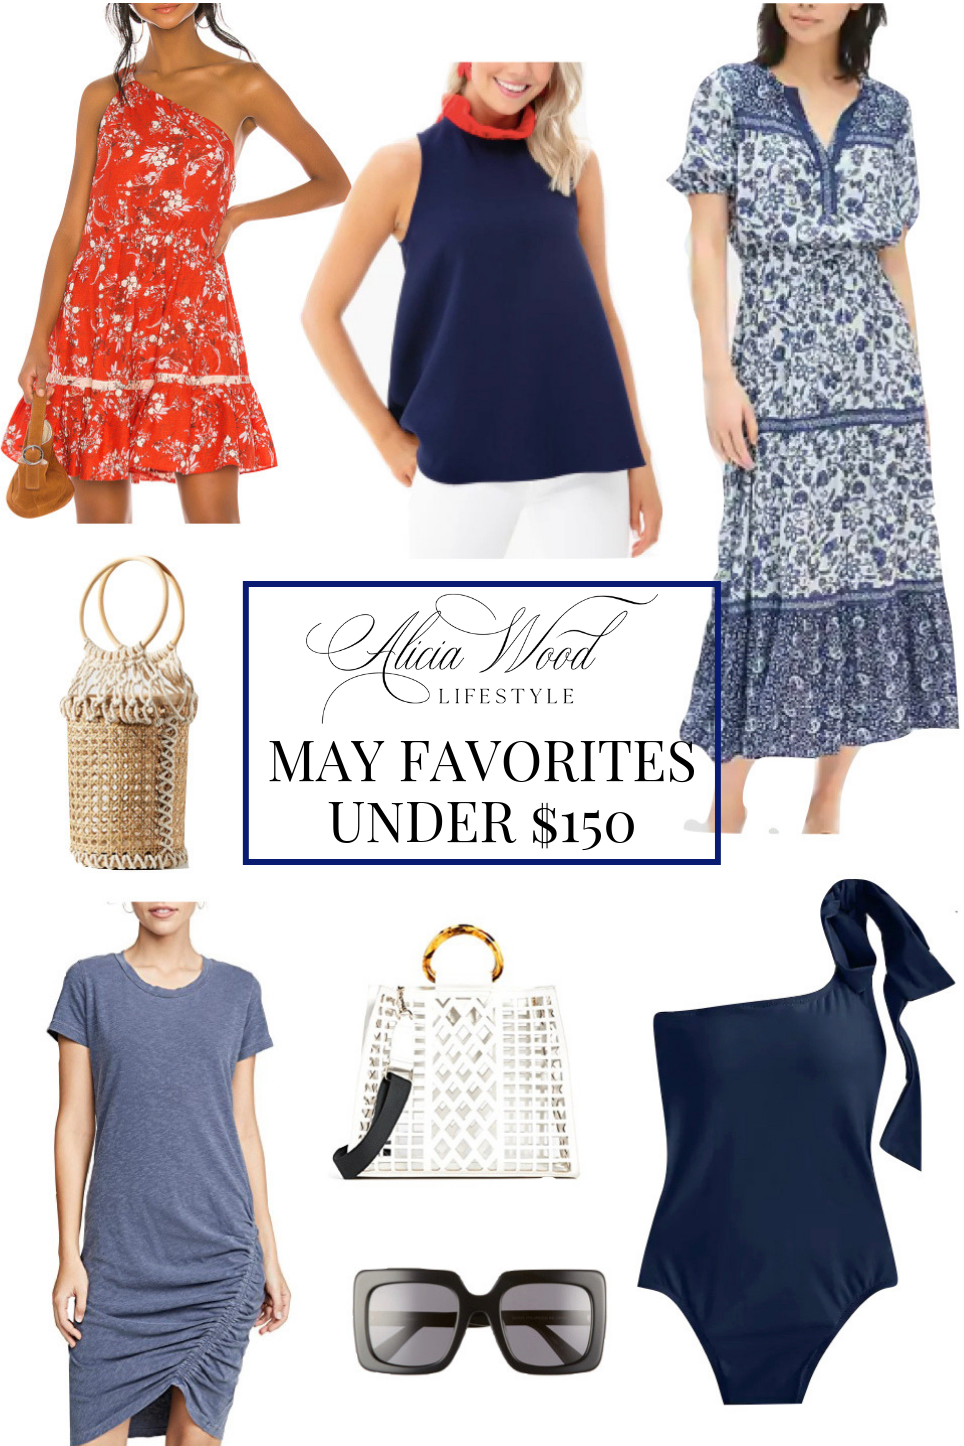 May Favorites Under $150